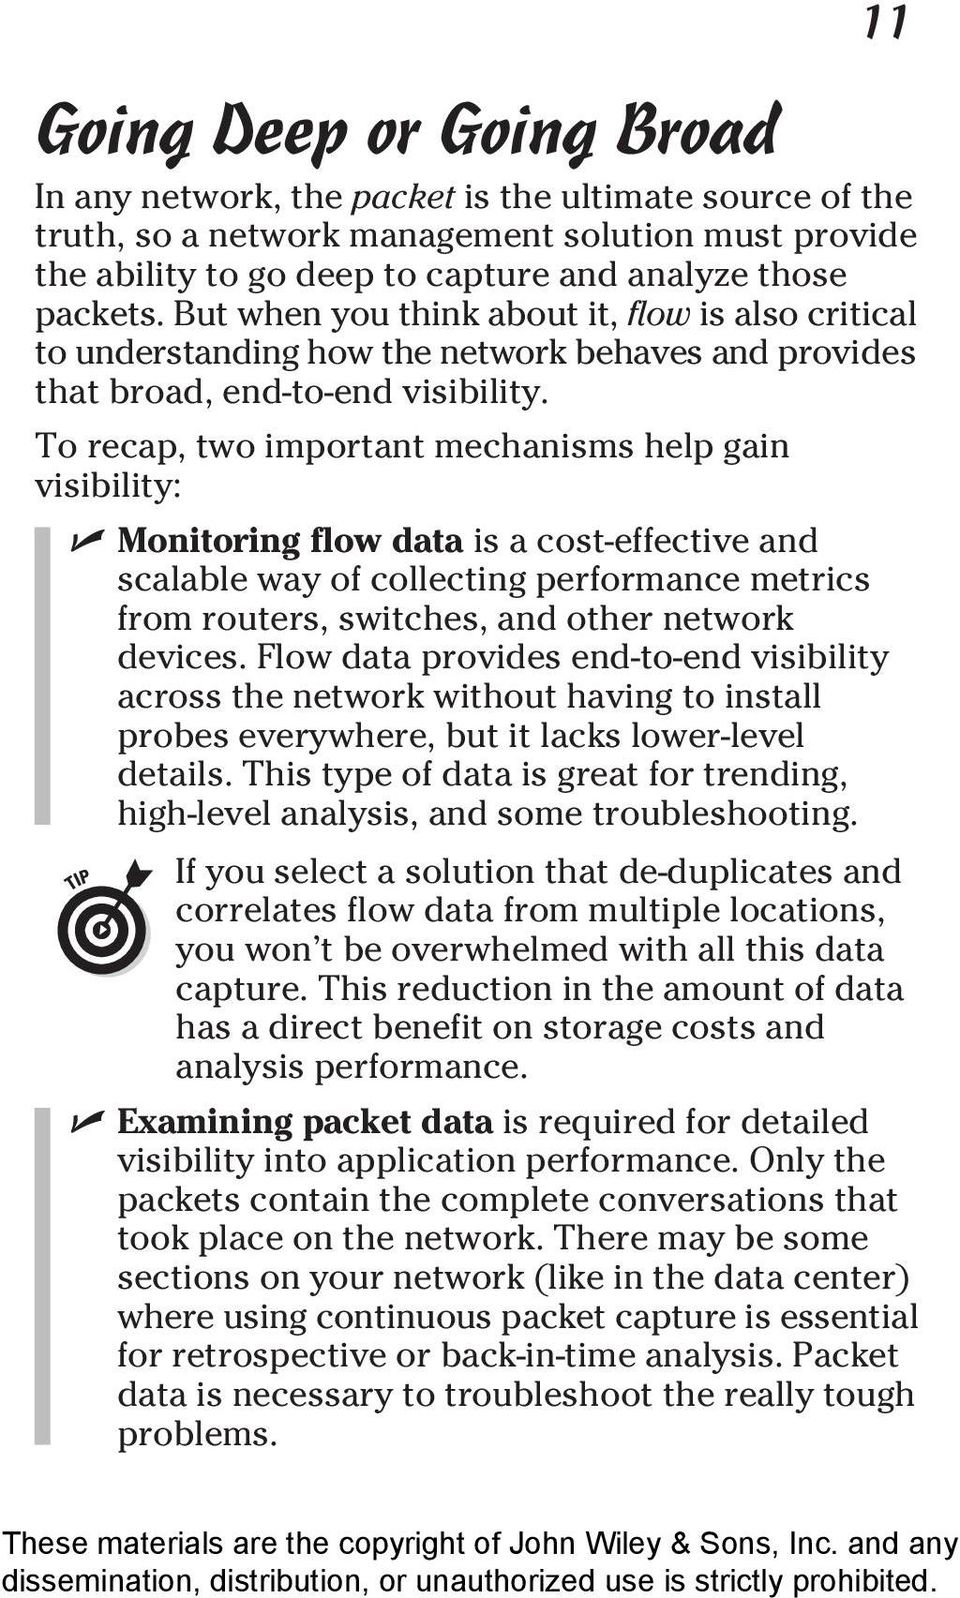 To recap, two important mechanisms help gain visibility: Monitoring flow data is a cost-effective and scalable way of collecting performance metrics from routers, switches, and other network devices.